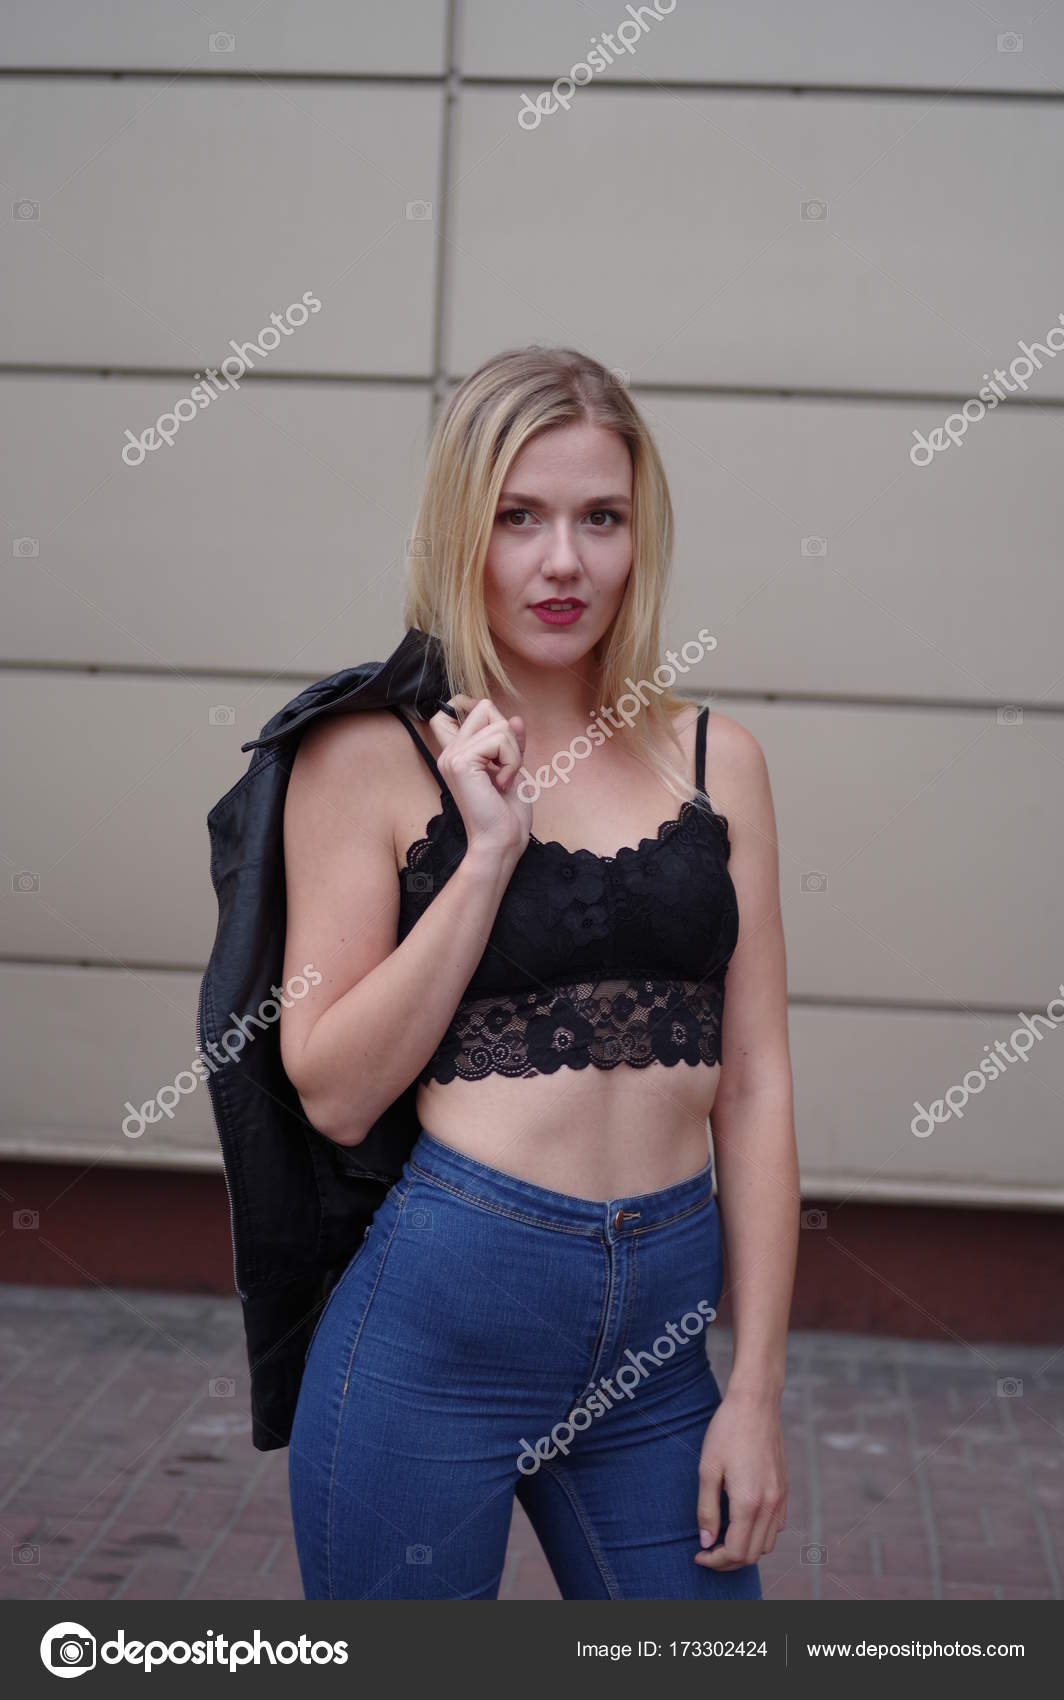 b019bb90bb96 Sexy beautiful young woman in blue jeans and black crop top. — Stock Photo